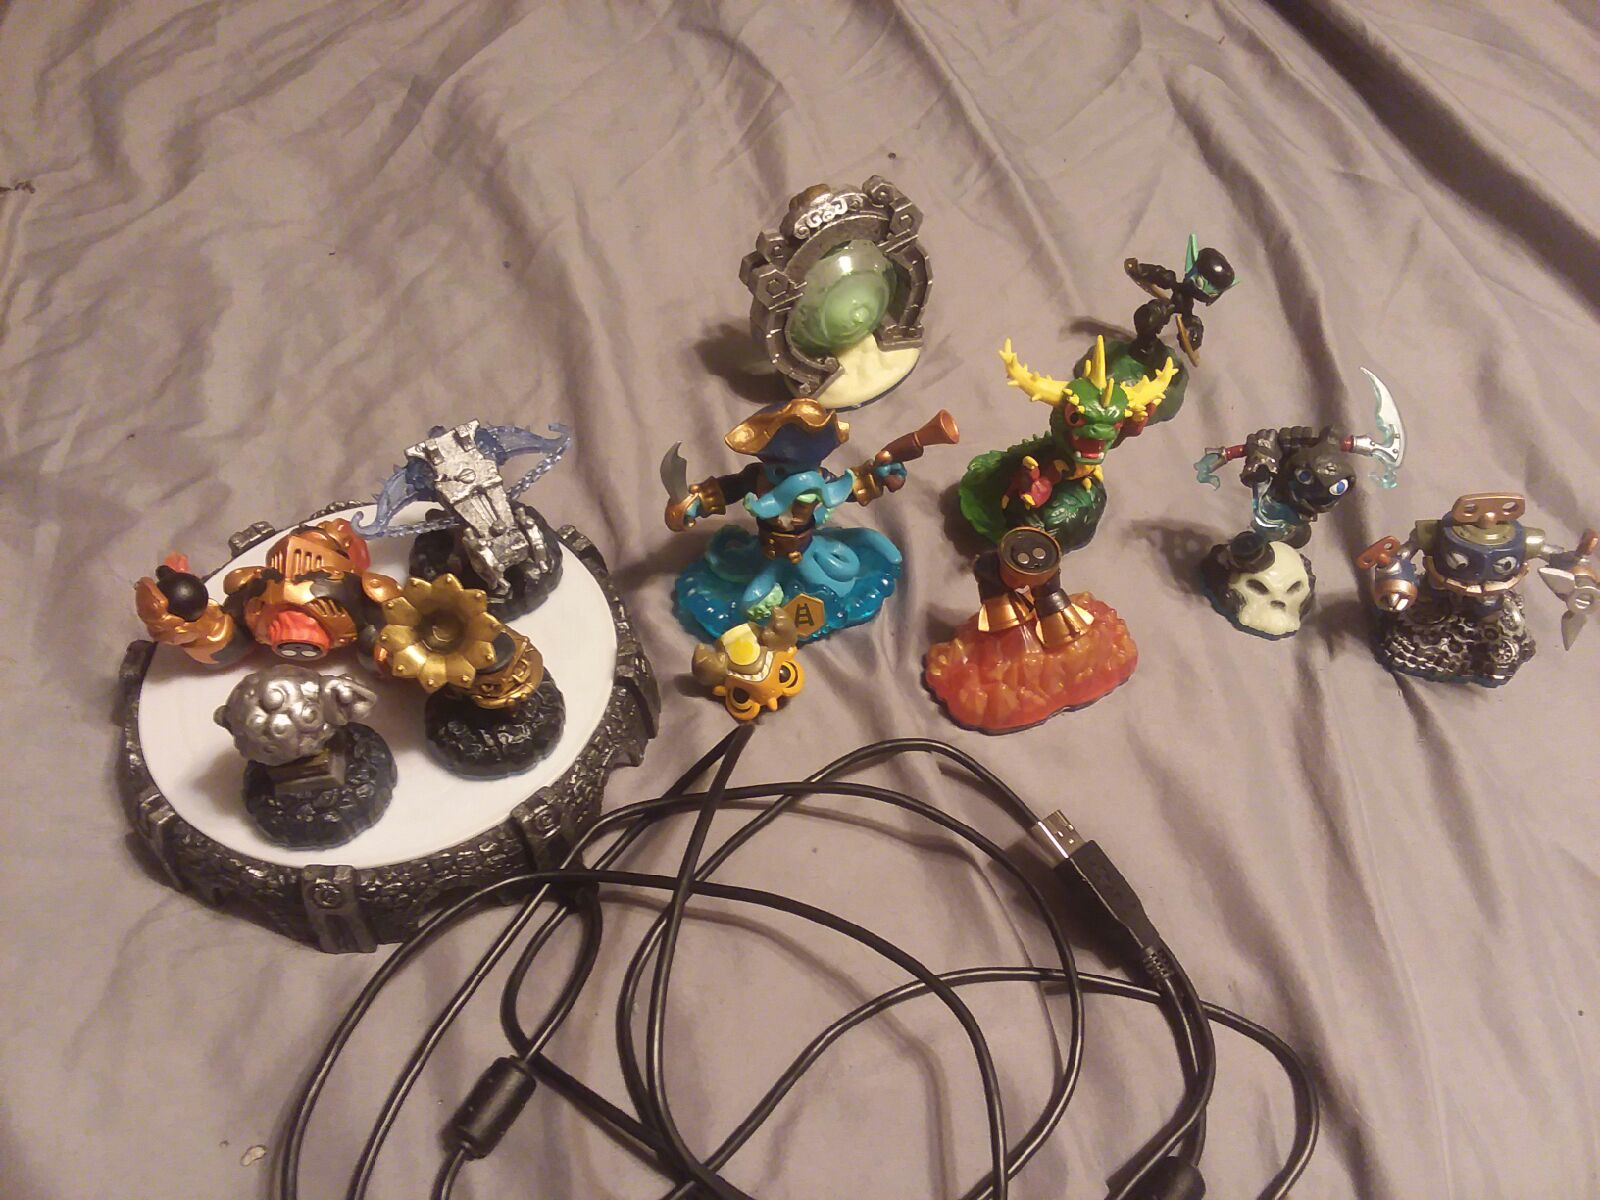 All of theses best offer gotta go